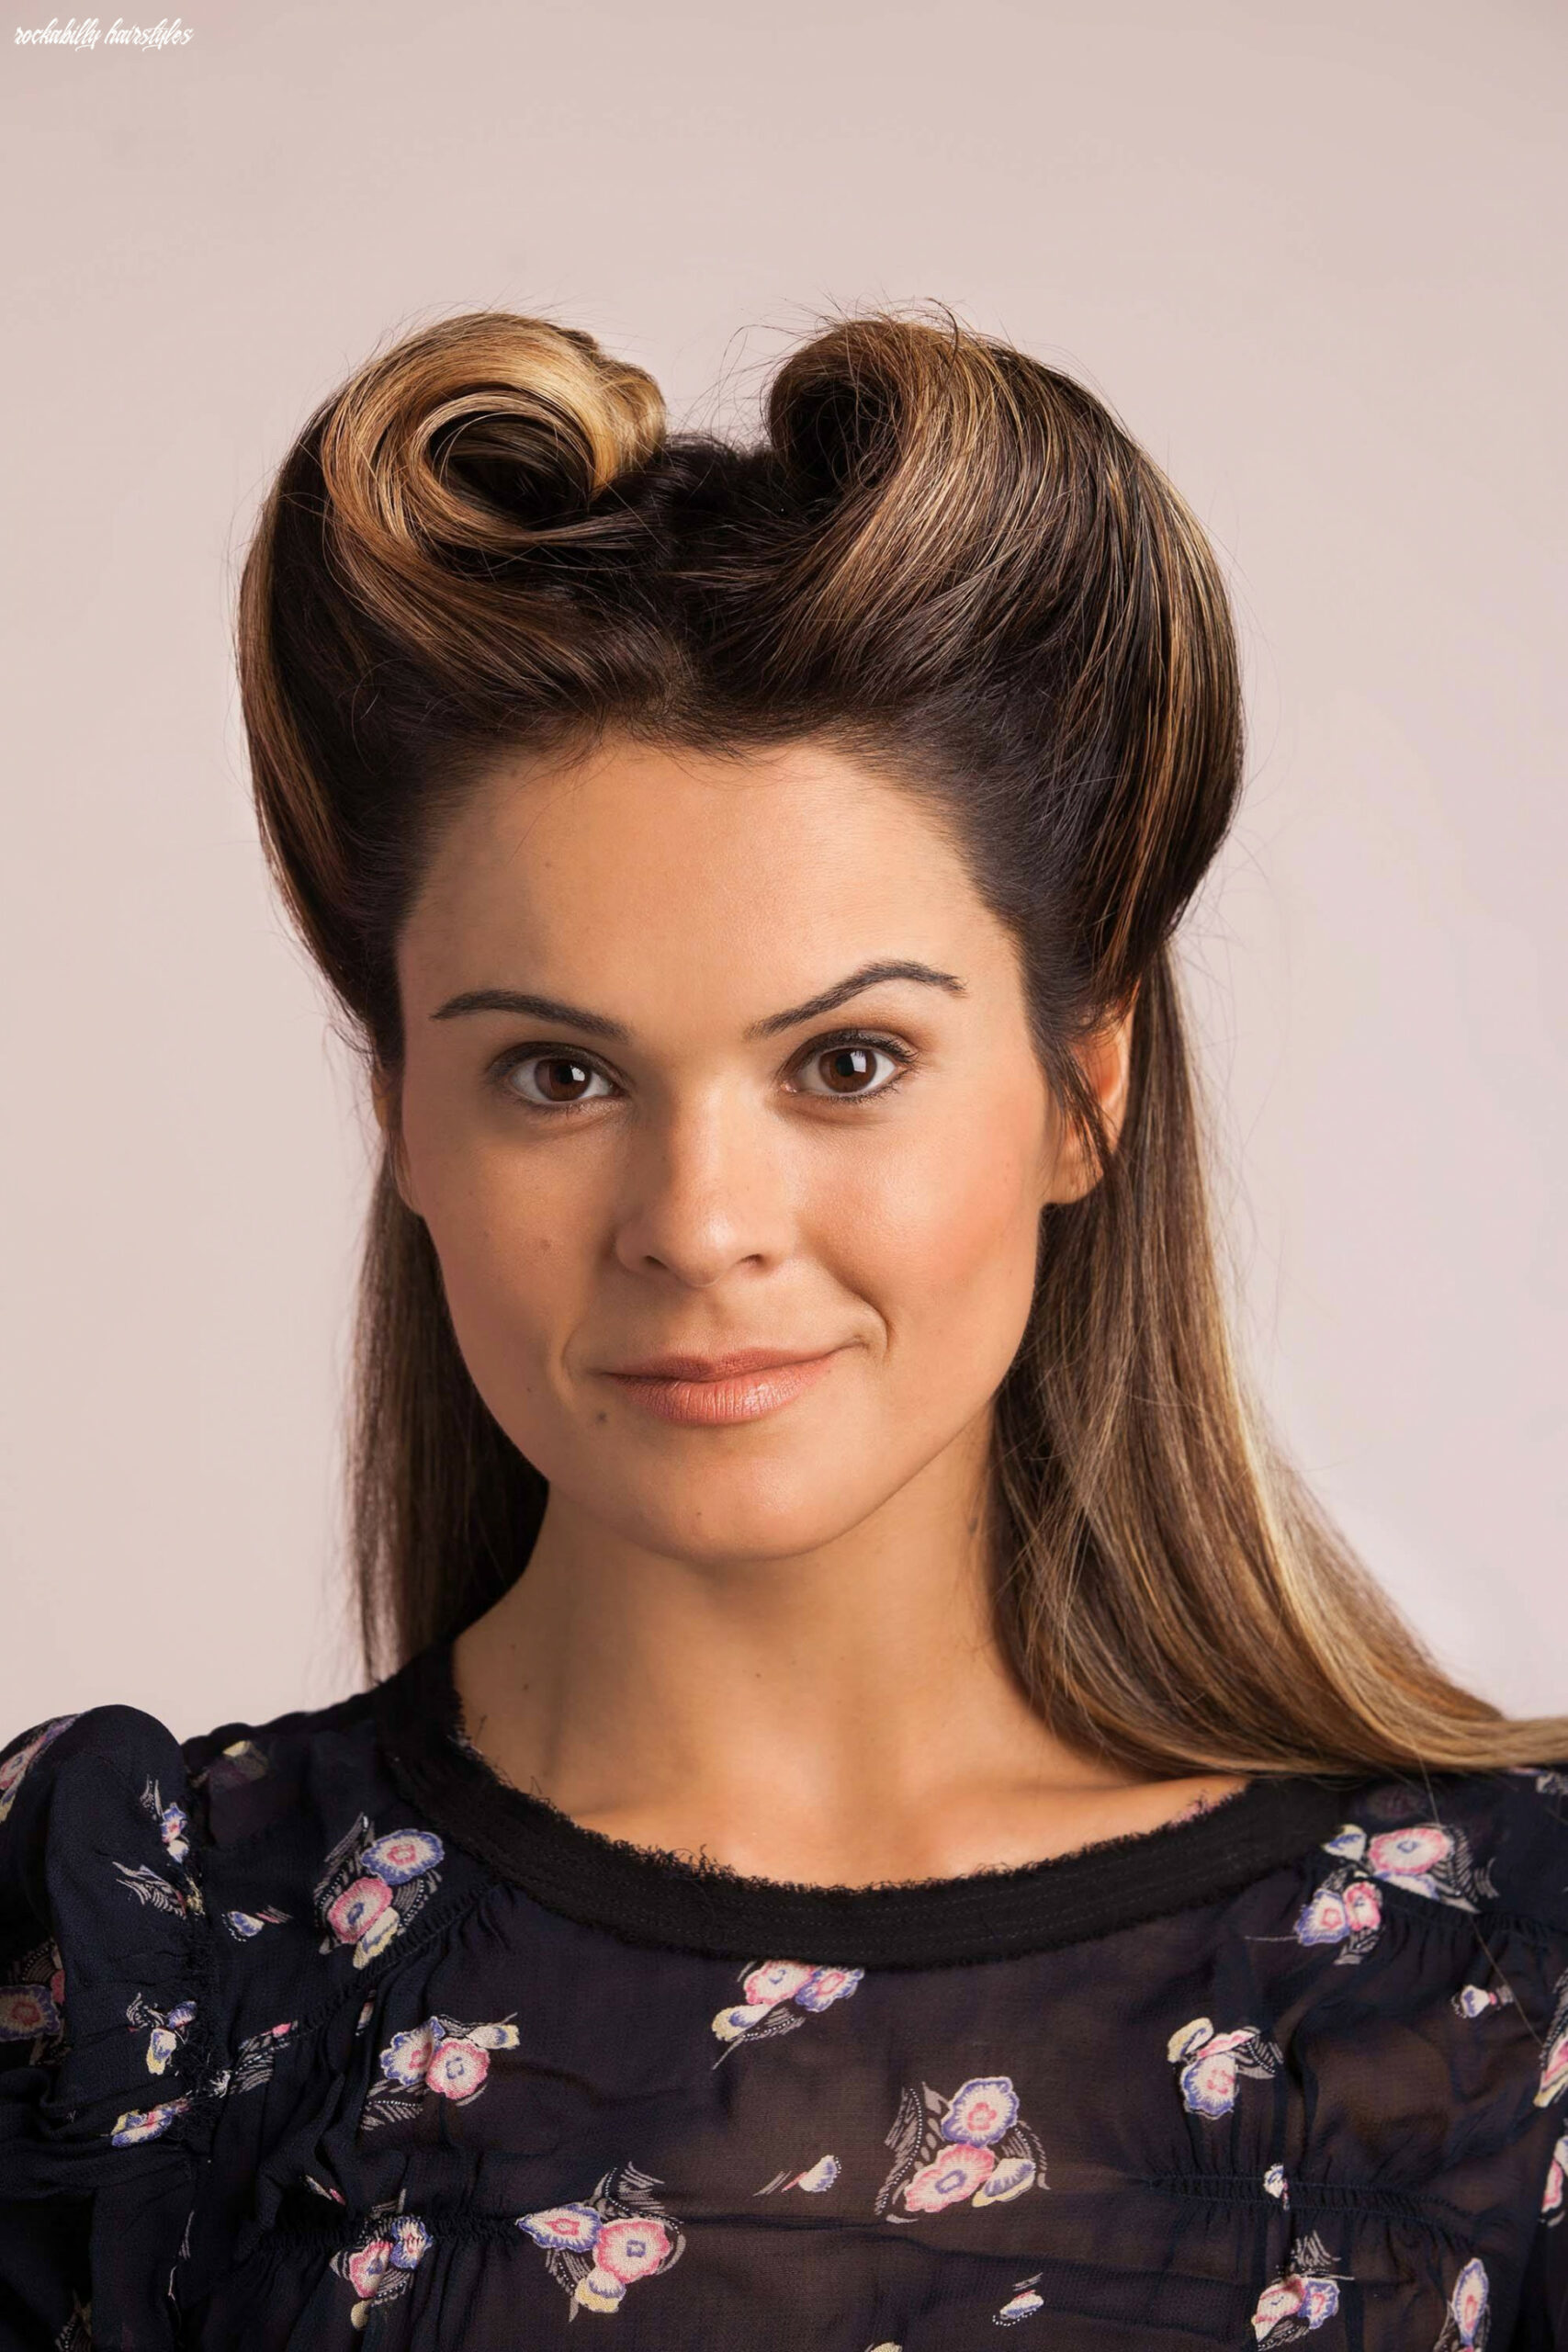 11 best rockabilly hairstyles and haircuts for women in 11 rockabilly hairstyles